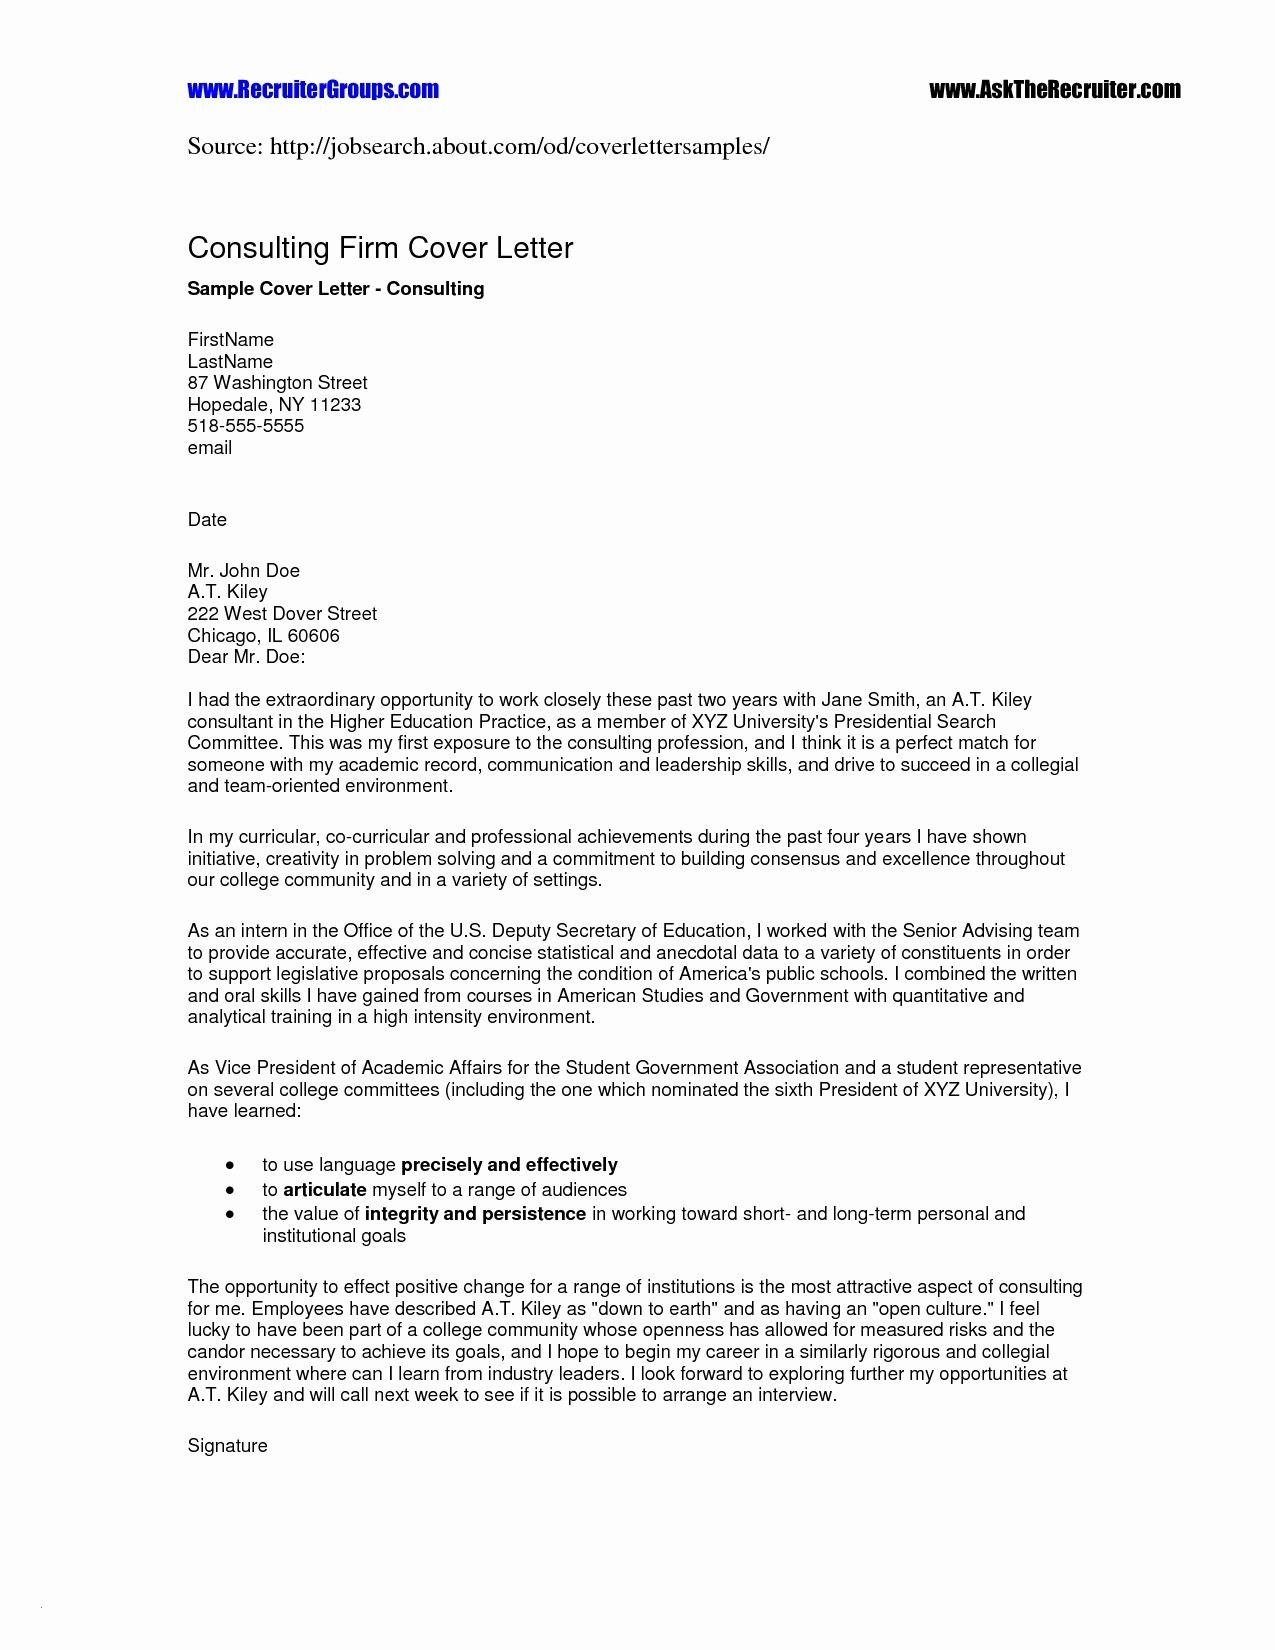 Fax Cover Letter Template Word - Cover Sheet Template for Resume New Resume Cover Letter Template